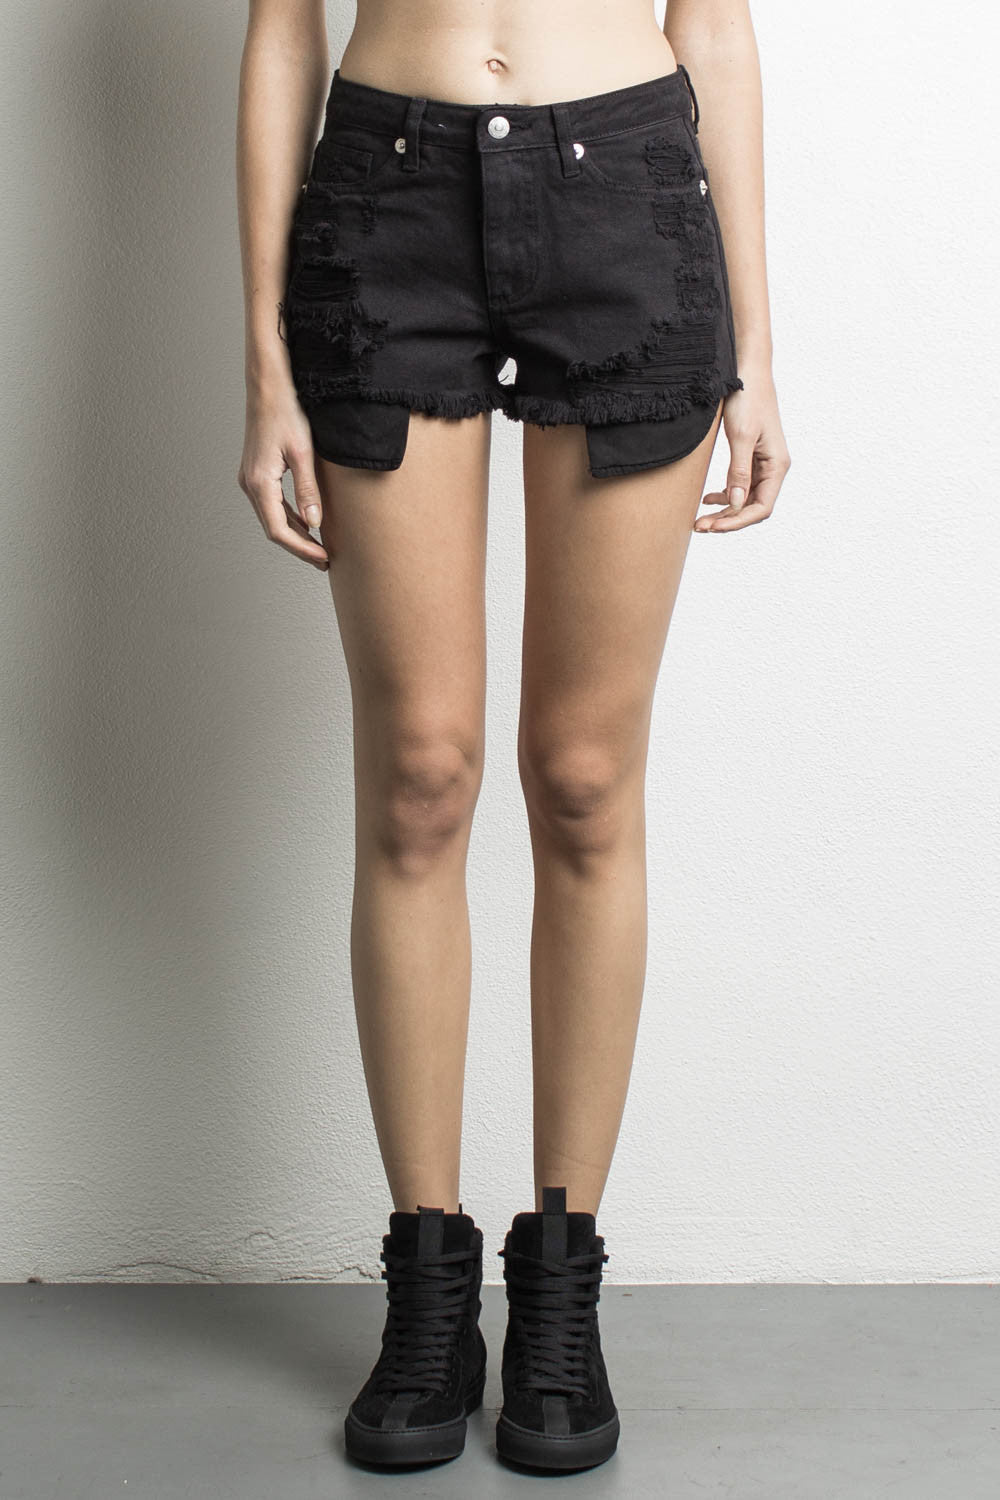 best price pretty cheap wholesale online DANIEL PATRICK | High Waisted Denim Shorts, Black - Daniel Patrick ...